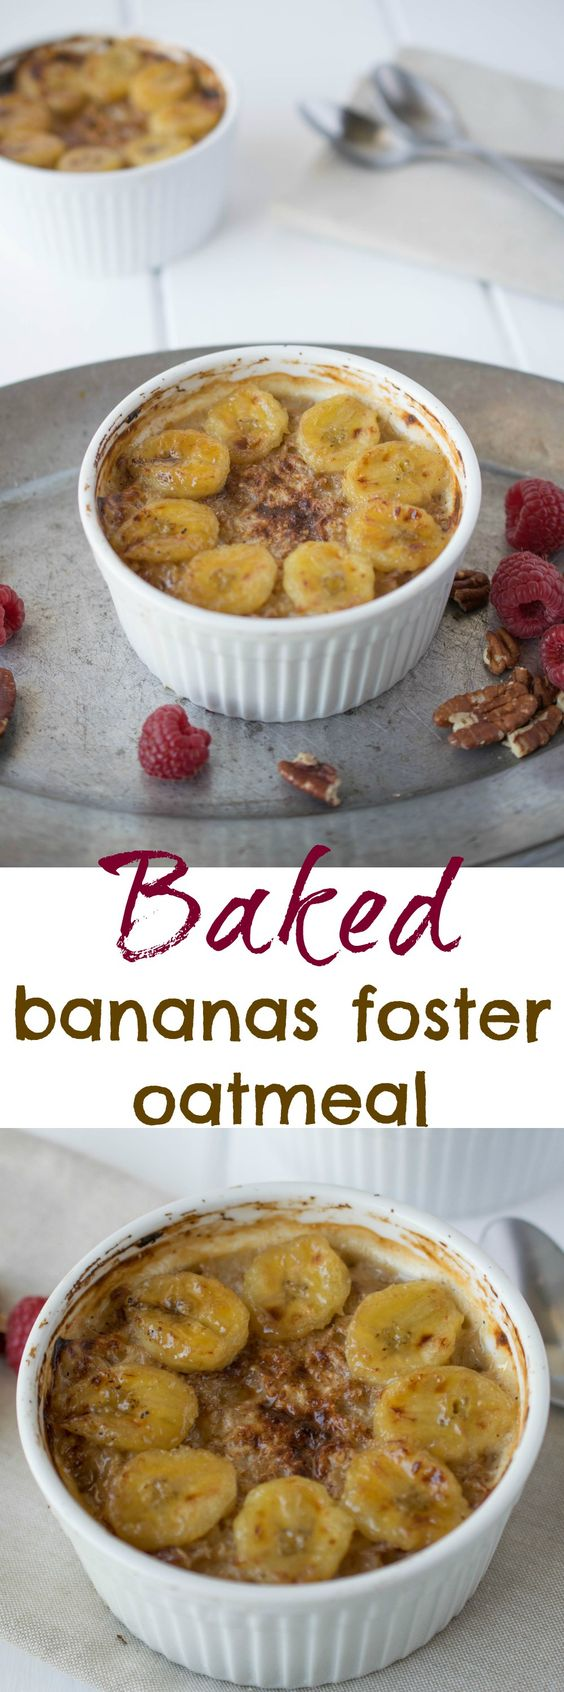 Vegan Bananas Foster Baked Oatmeal Recipe — Dishmaps